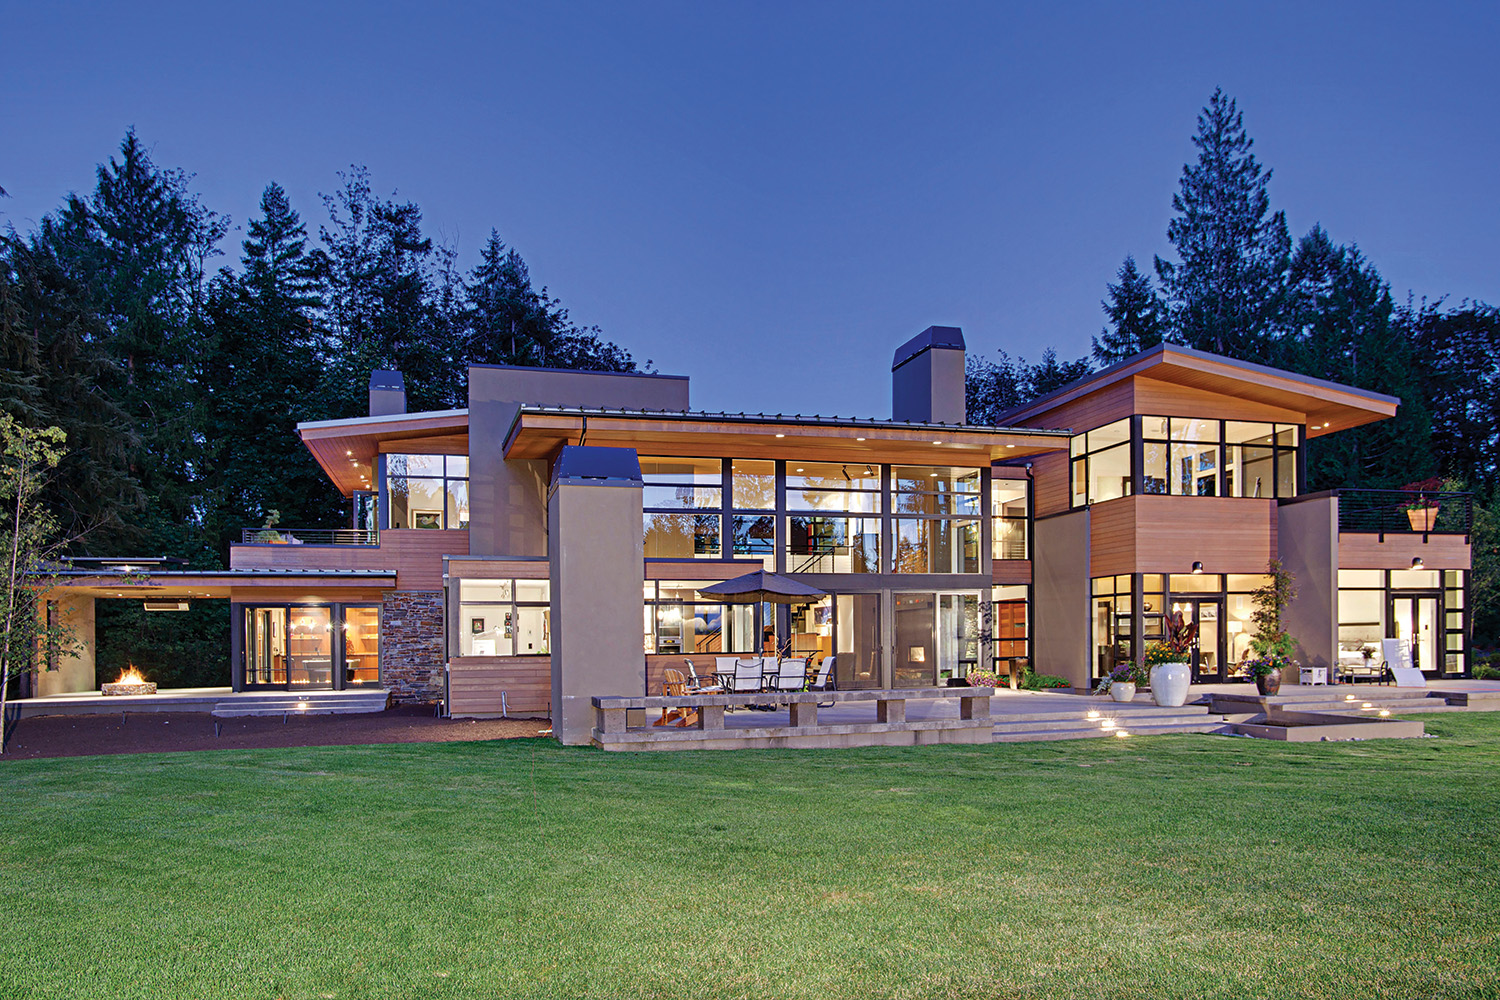 Contemporary Dusk - 2058 250th Place NE, Sammamish, listed with Jay Kipp for $2,300,000